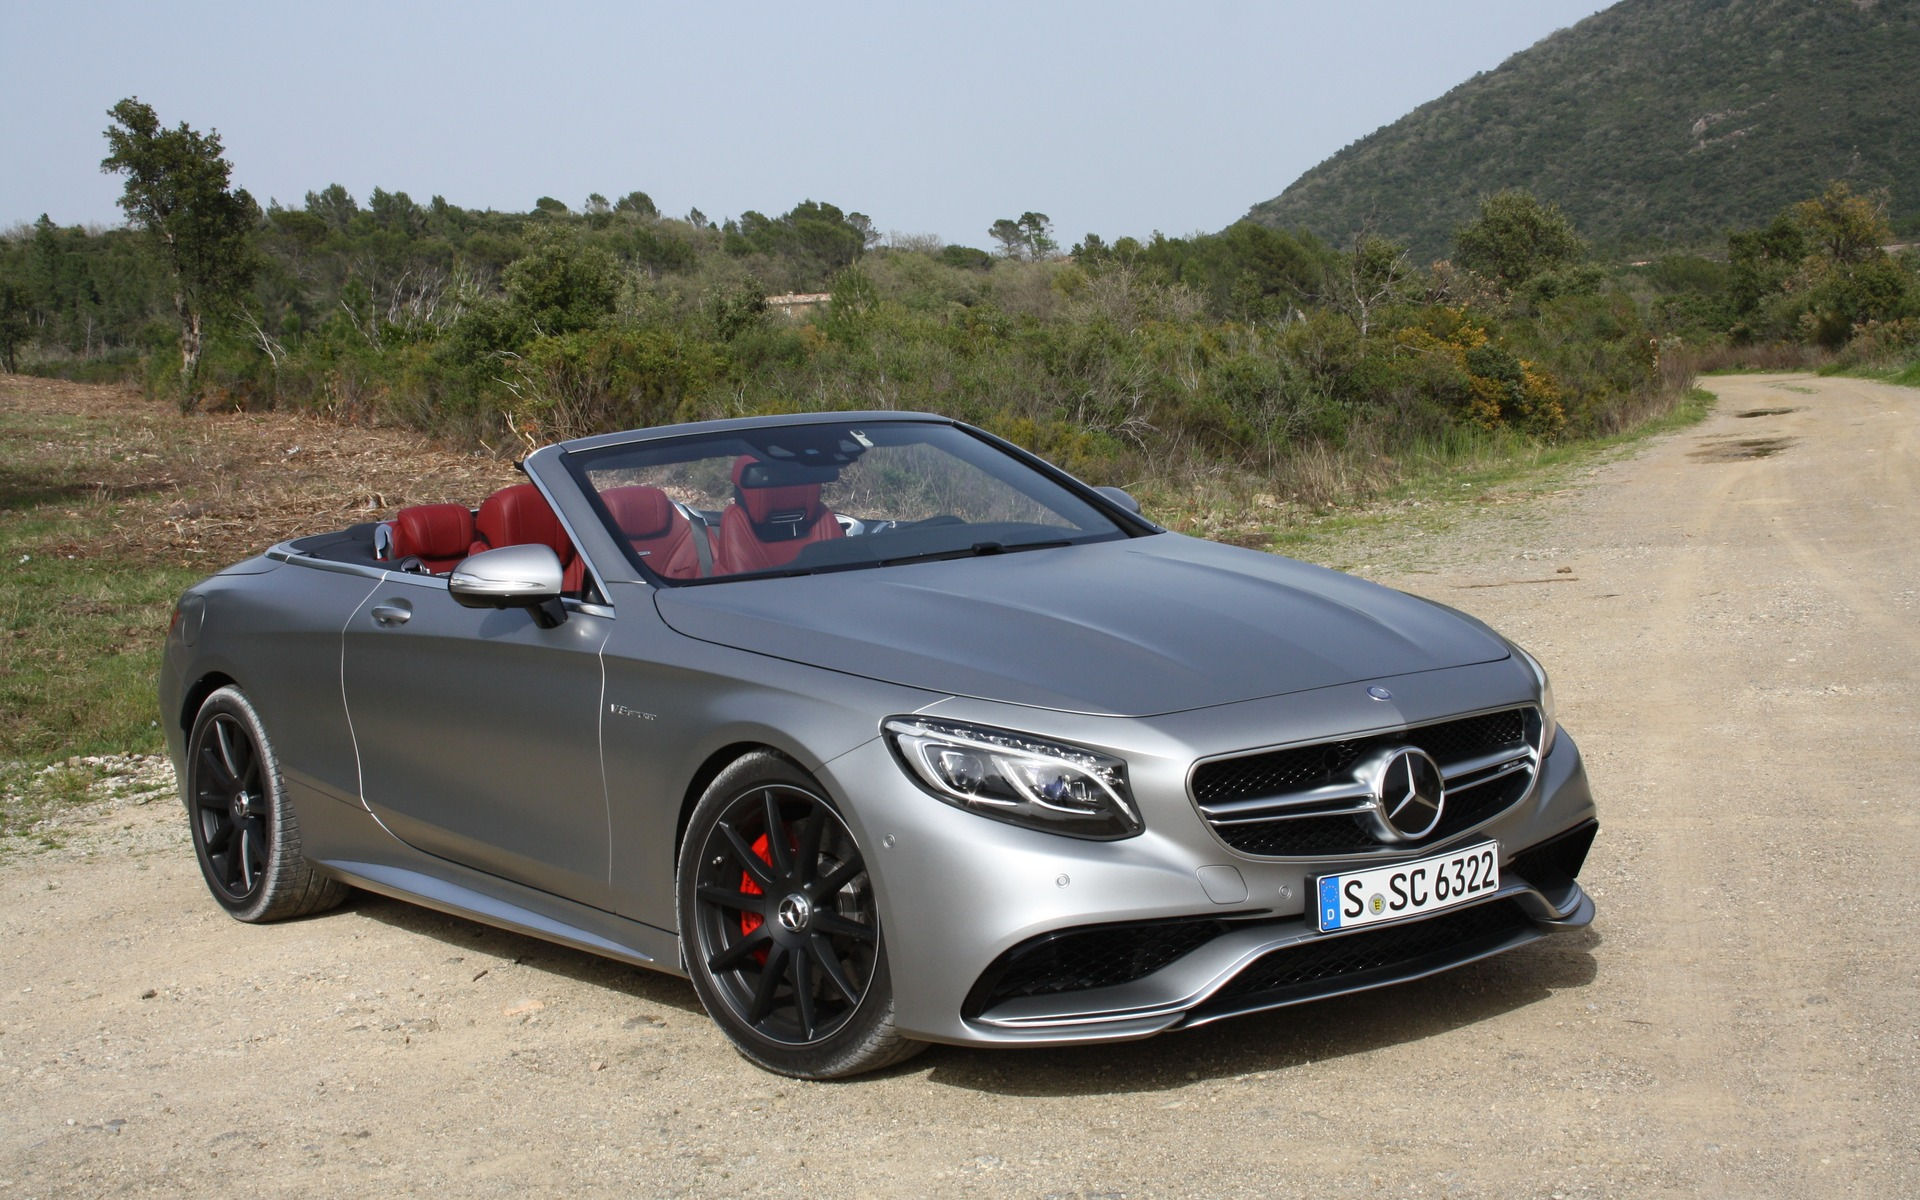 Mercedes-AMG S 63 4MATIC Cabriolet 2017